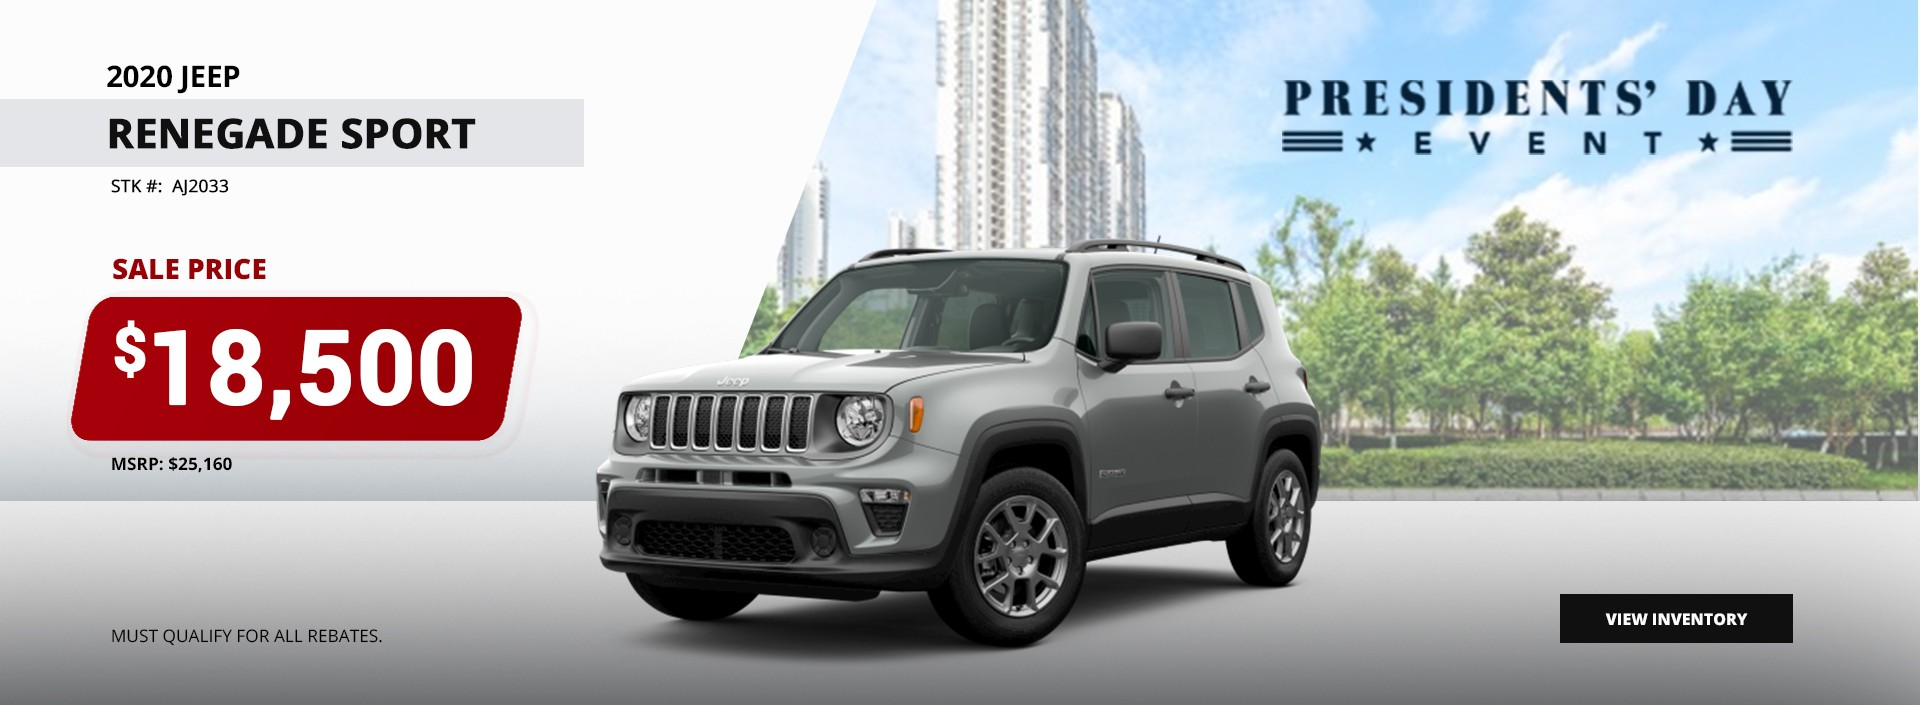 2020 Jeep Renegade Sport Sale Pirce $18,500 at President's Day Event